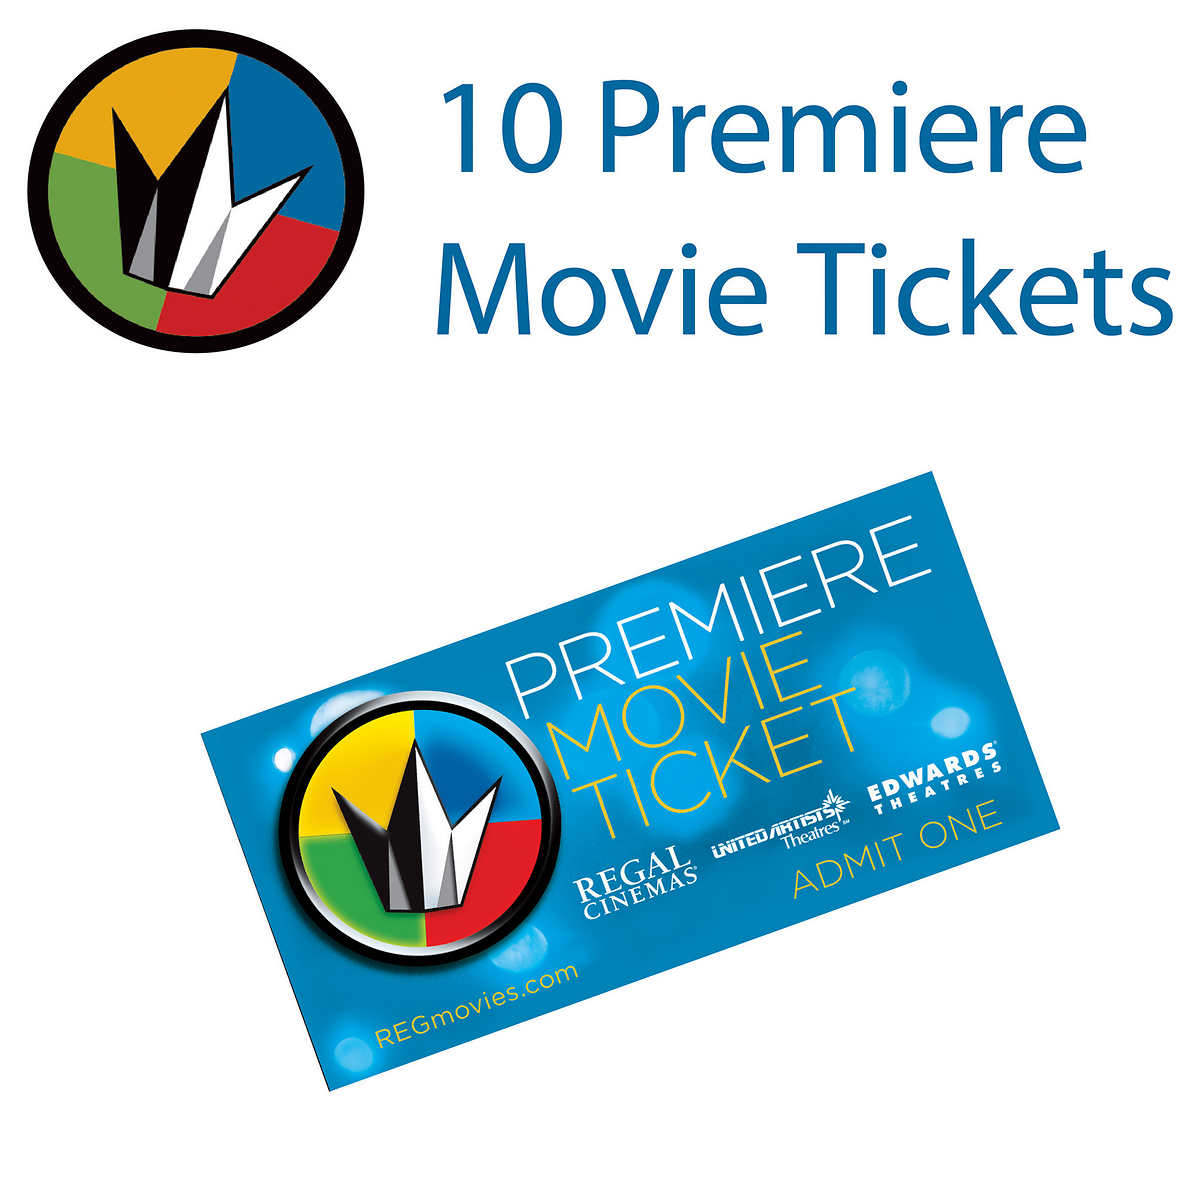 regal entertainment group premiere movie tickets pack regal entertainment group premiere movie tickets 10 pack click to zoom